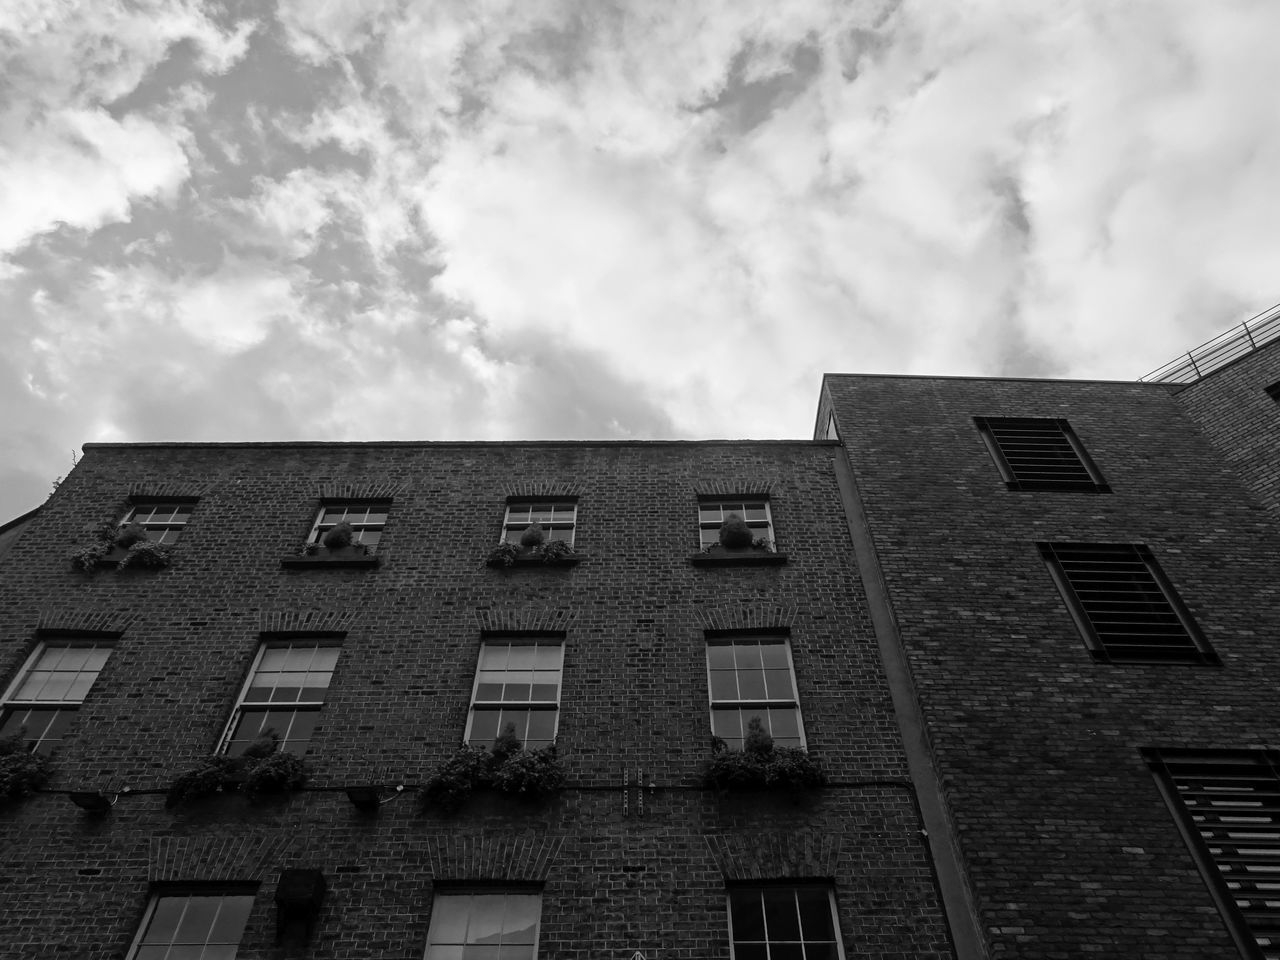 cloud - sky, building exterior, sky, built structure, architecture, window, low angle view, building, residential district, no people, city, nature, day, outdoors, overcast, repetition, apartment, in a row, old